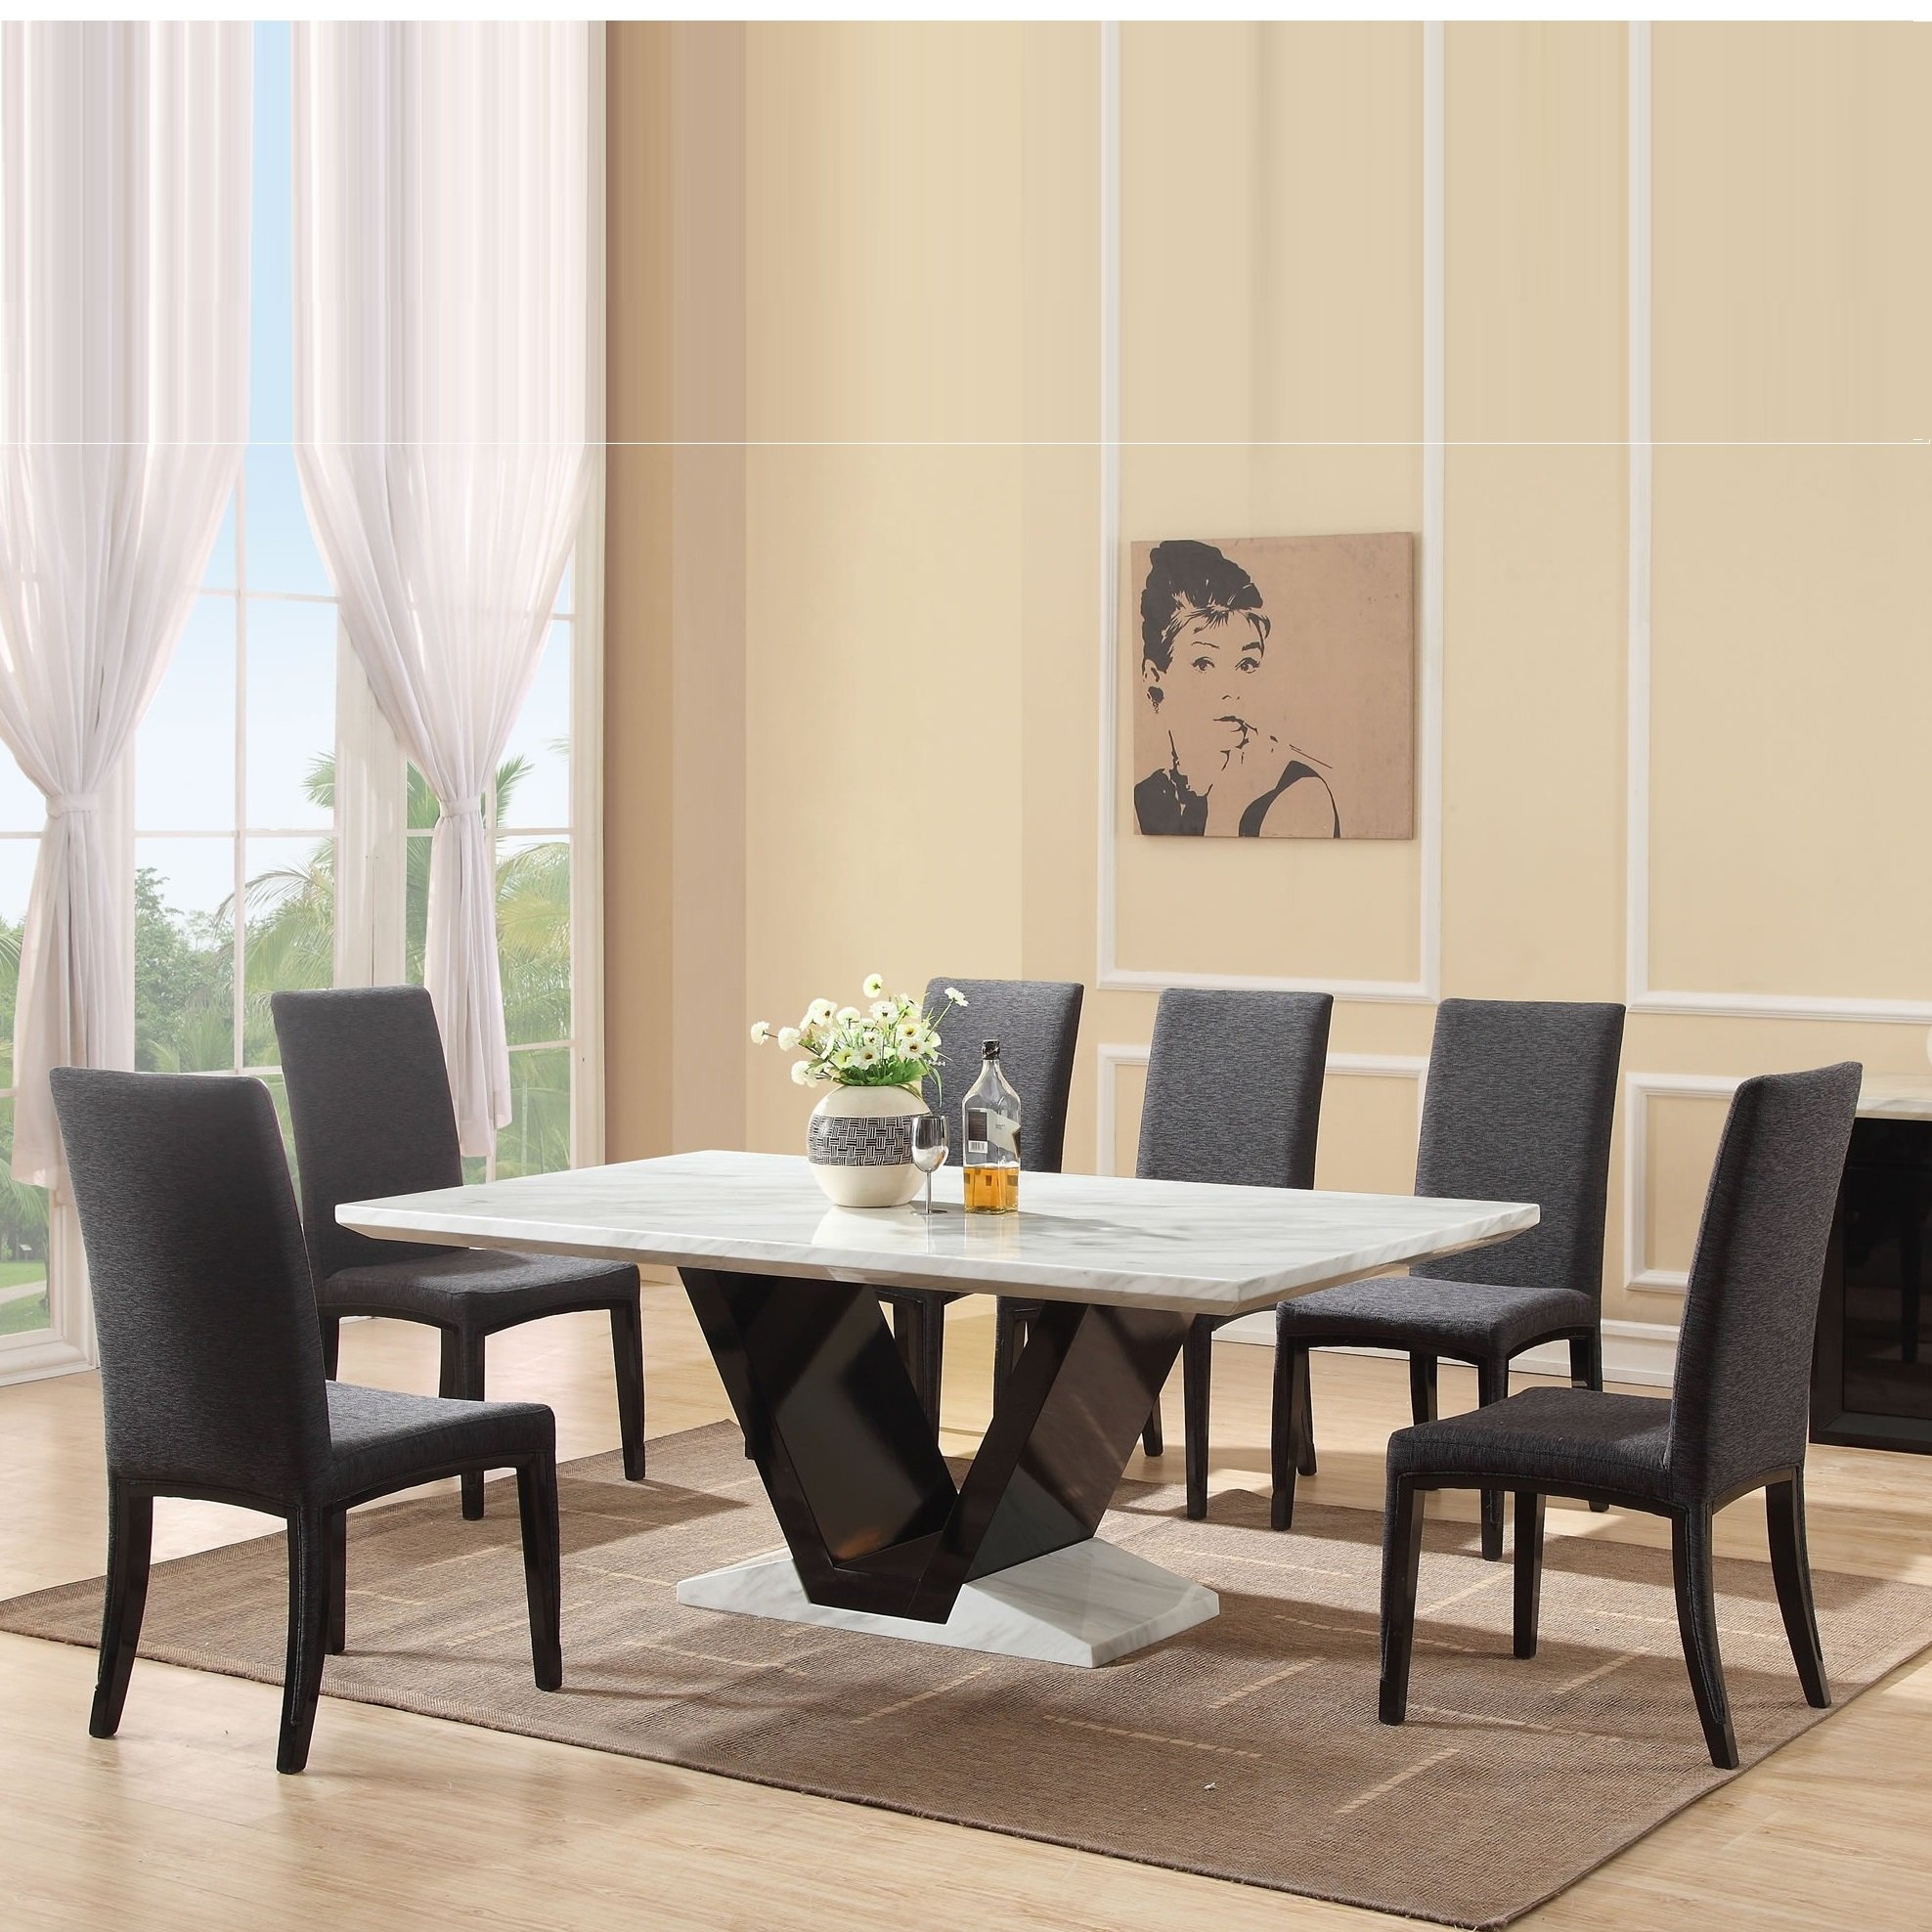 Midas gloss black marble dining table 8 midas chairs for Dining table and 8 chairs